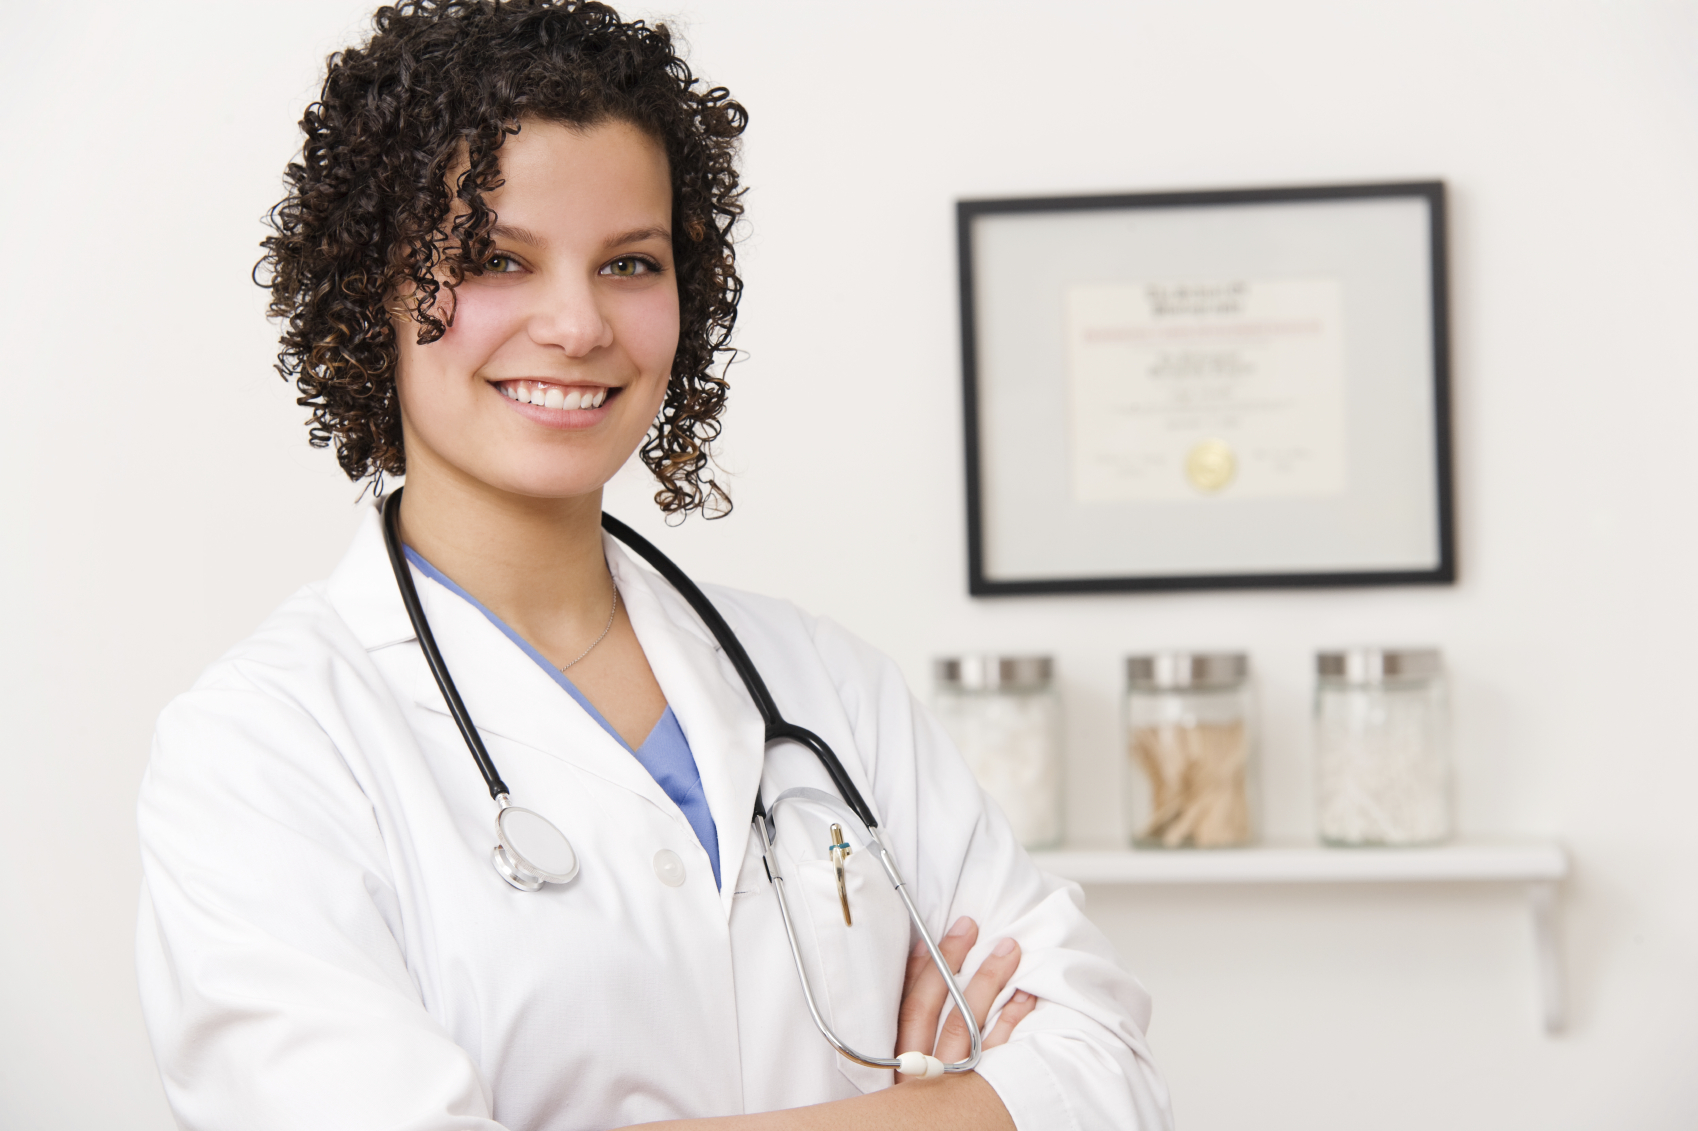 Registered Nurse - Online Healthcare Degrees